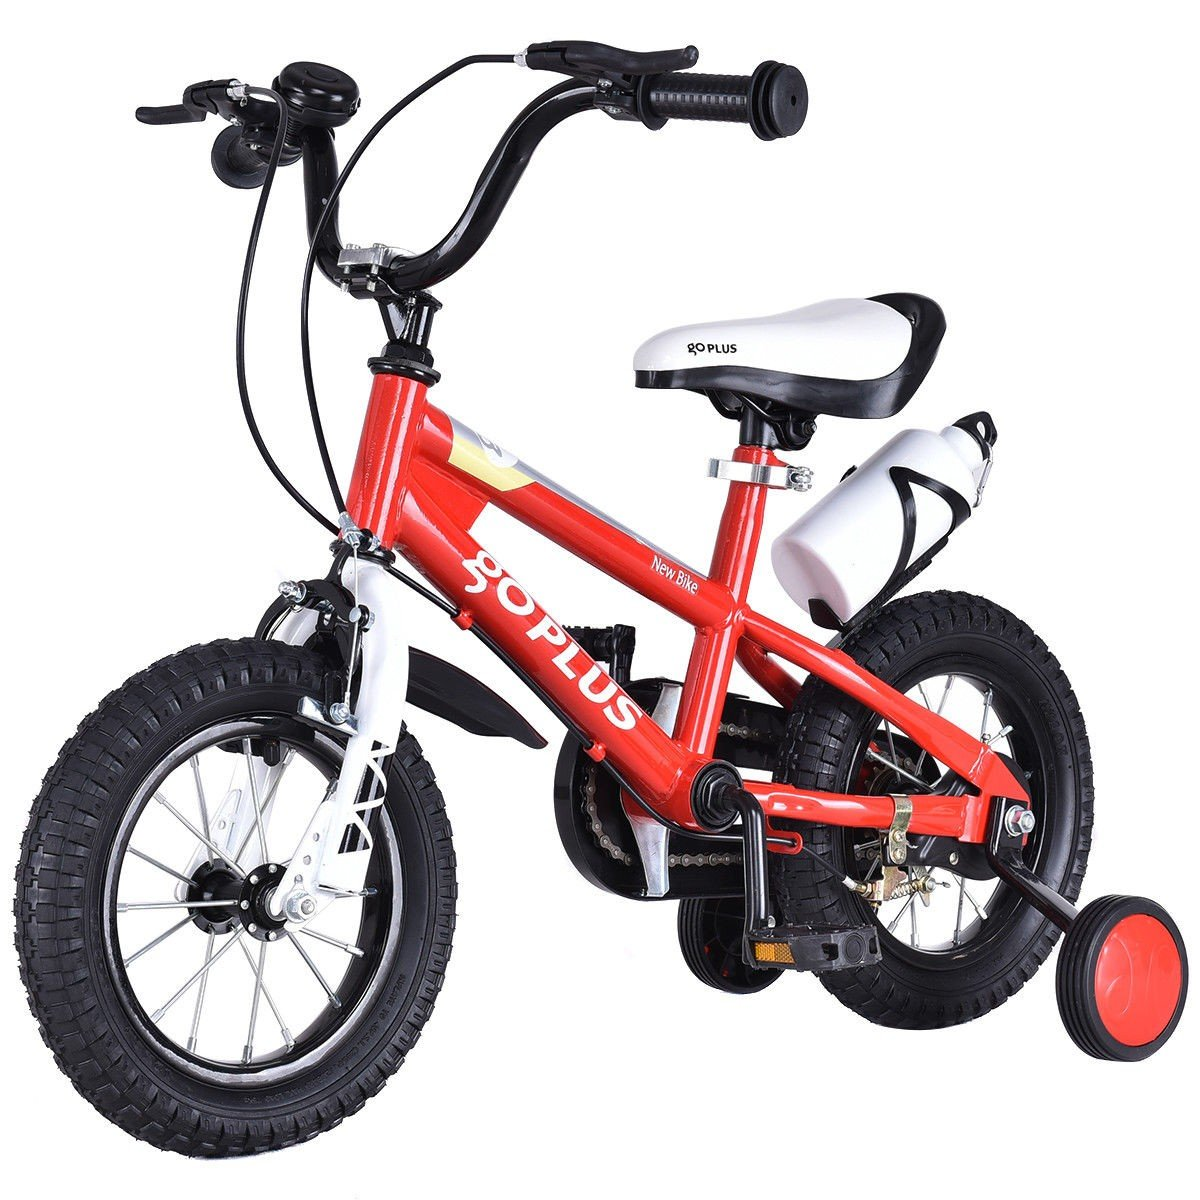 MD Group Kids Bicycle 20'' Adjustable Freestyle Boys & Girls Red Metal w/ Training Wheels by MD Group (Image #1)